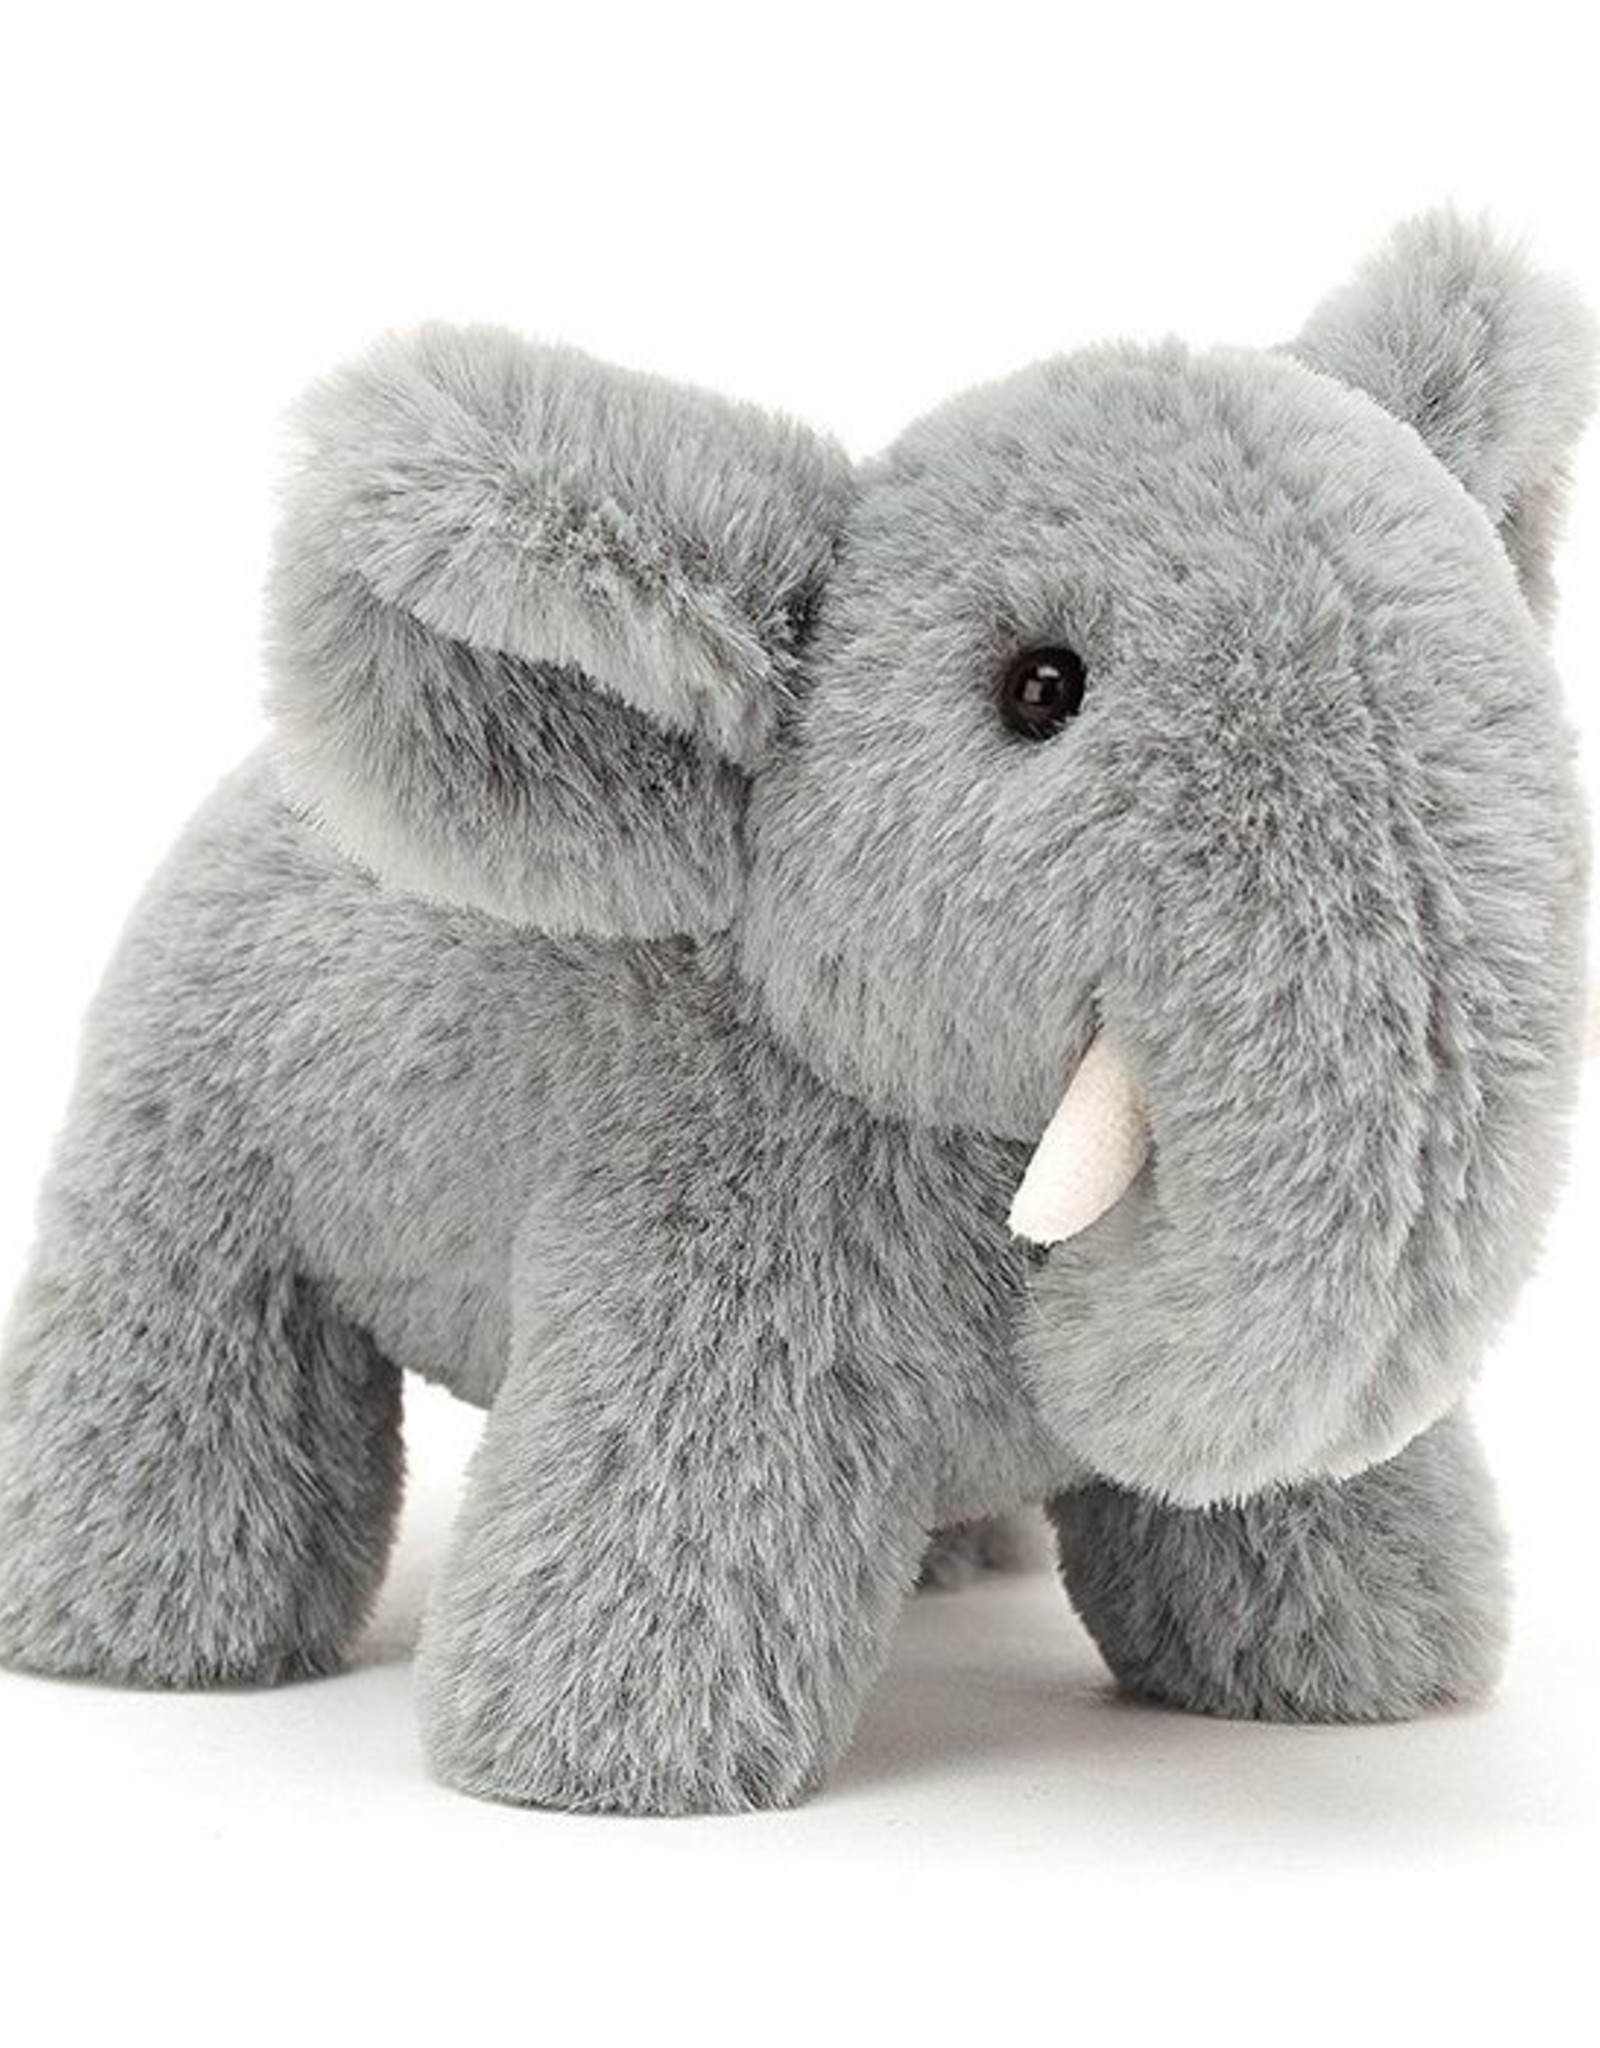 Jellycat Jellycat Diddle olifant